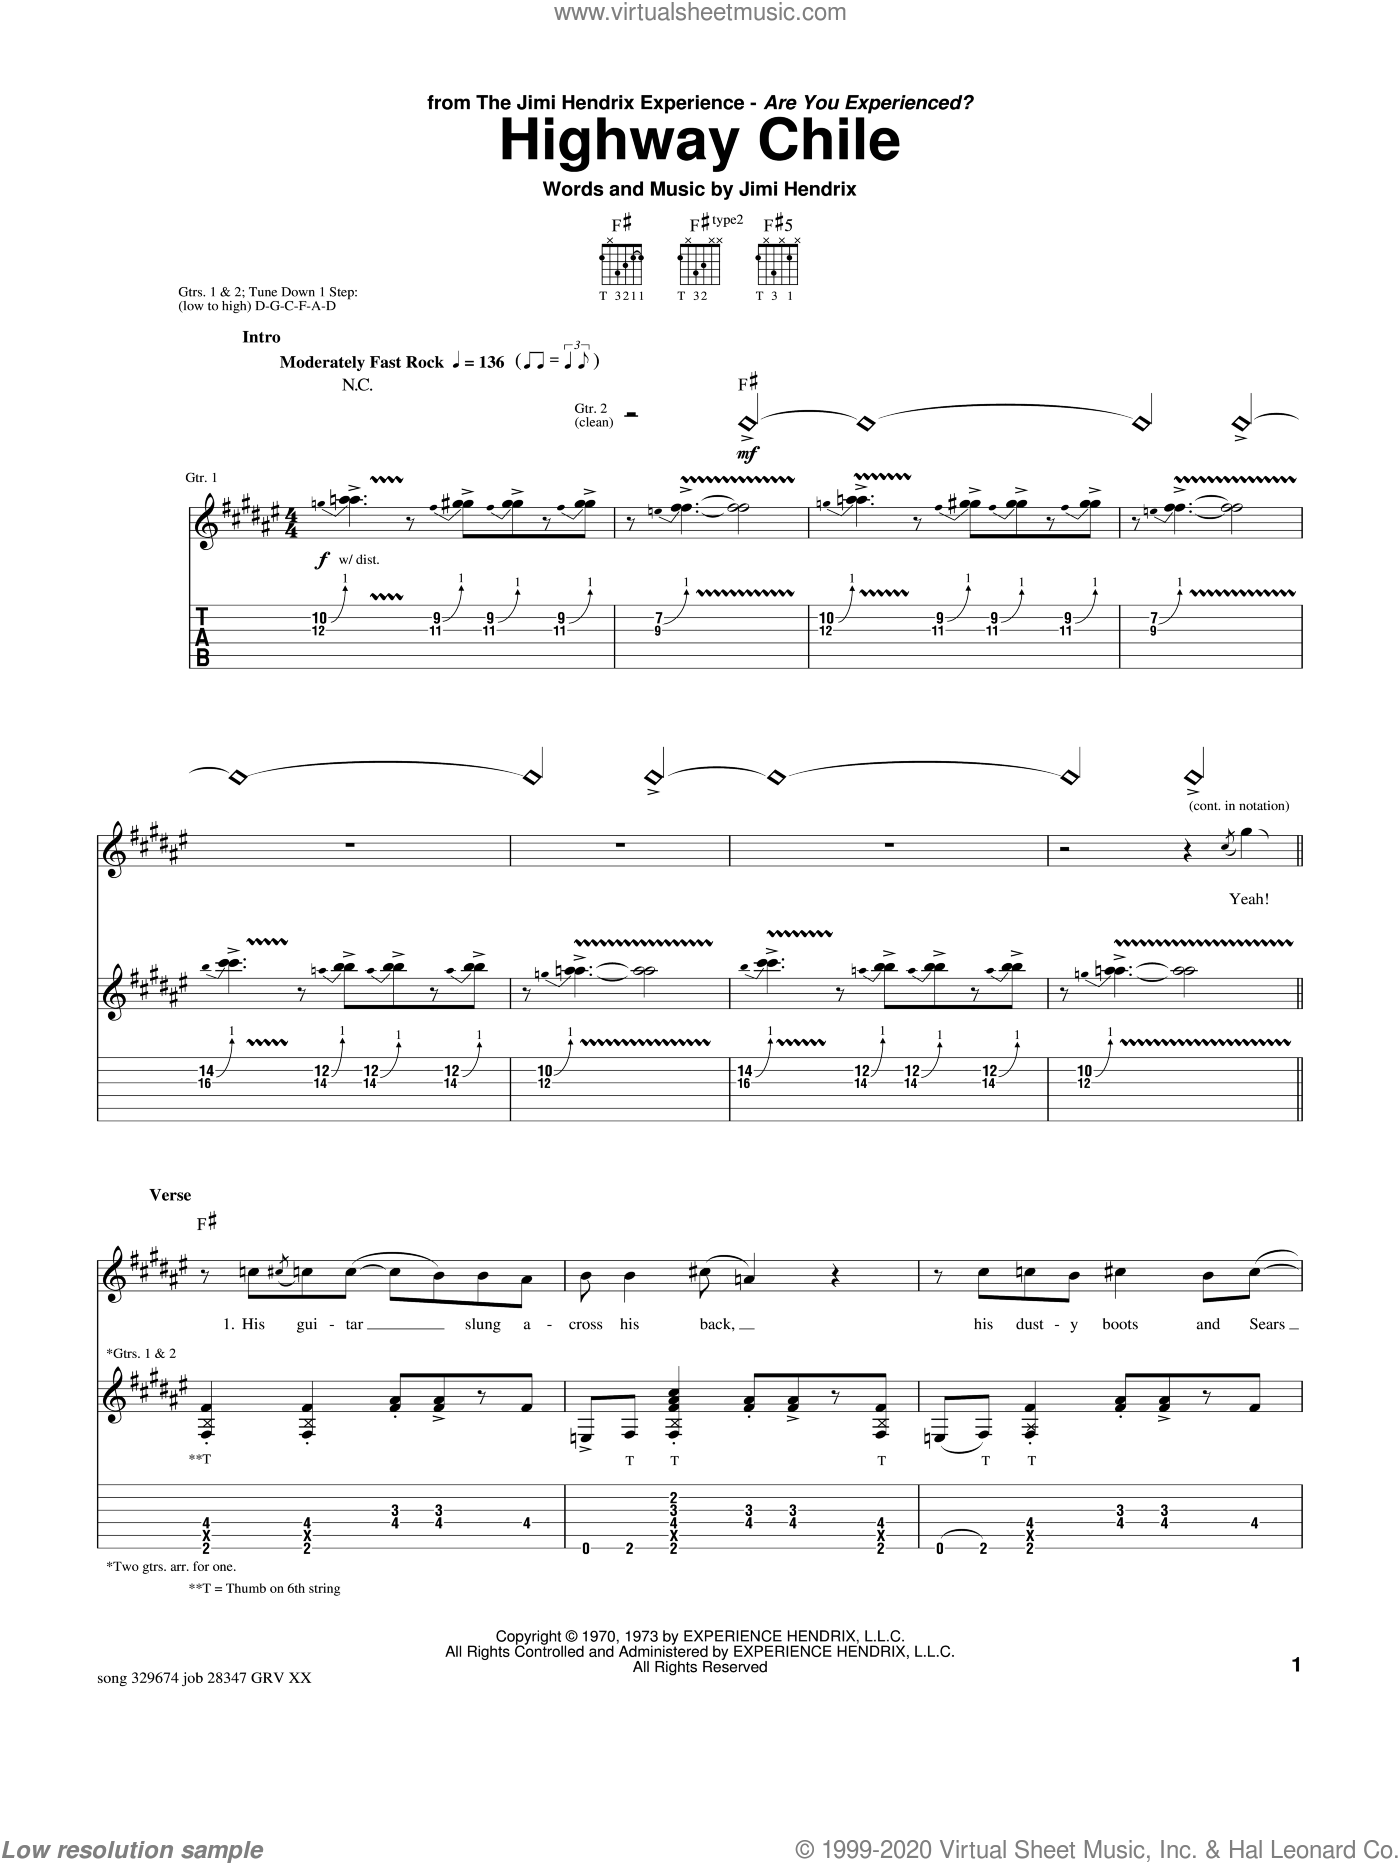 Highway Chile sheet music for guitar (tablature) by Jimi Hendrix and Paul Gilbert, intermediate skill level